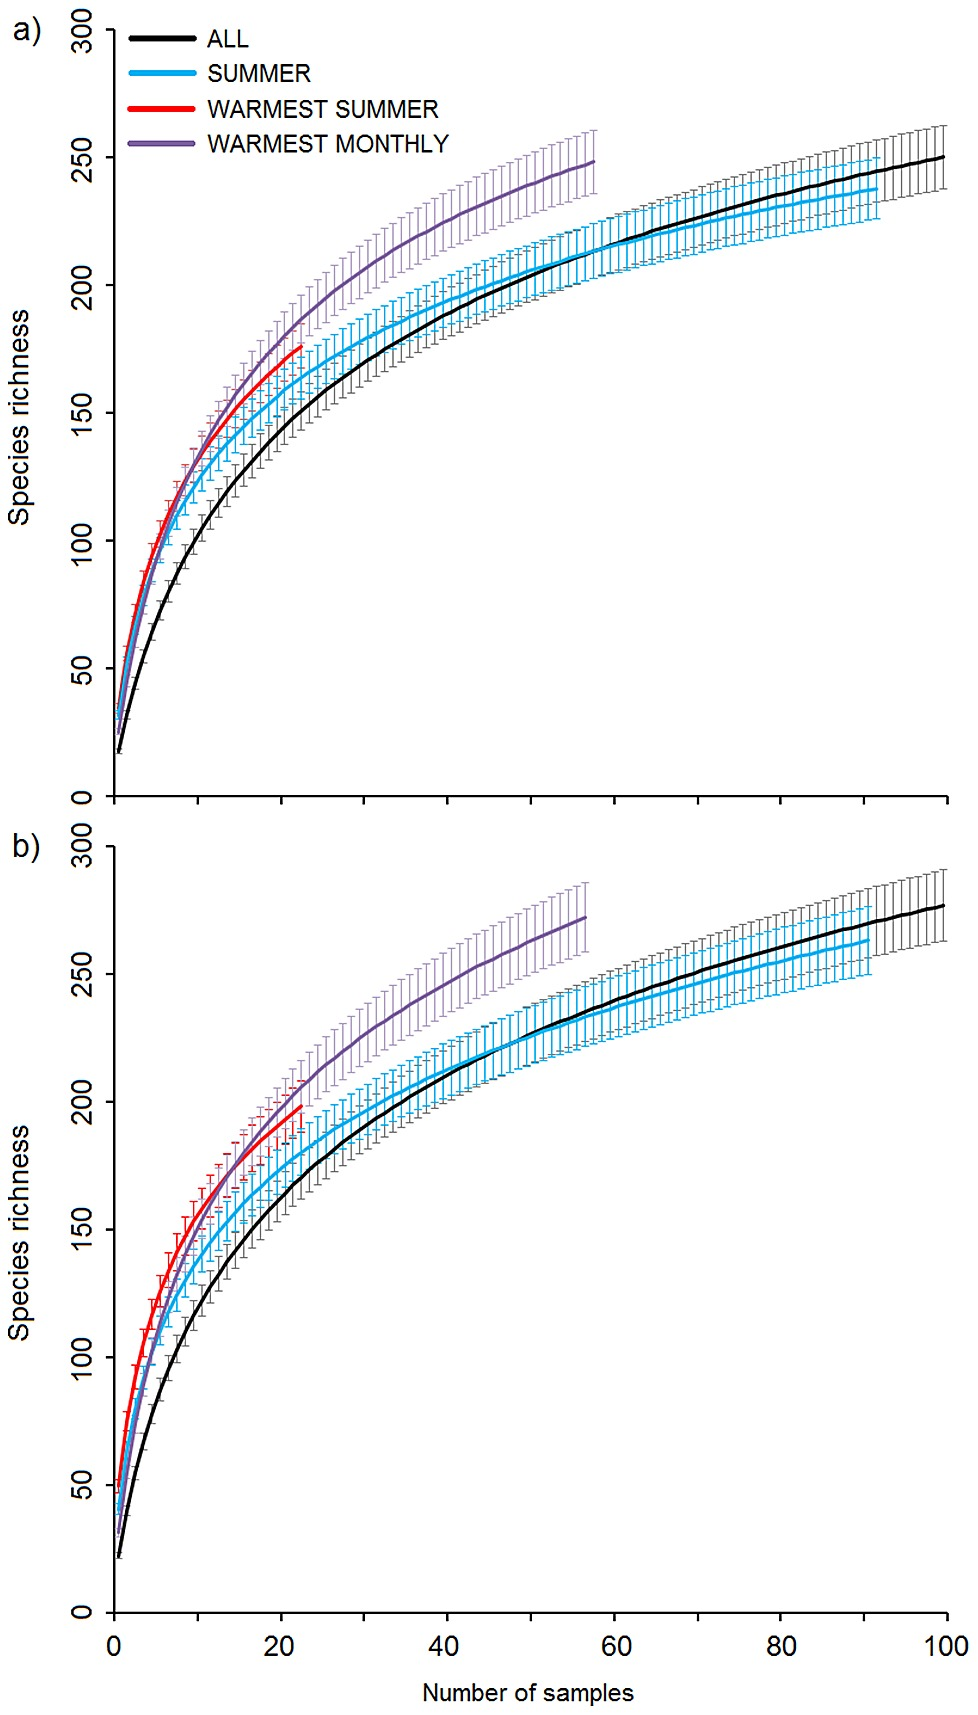 Sample-based rarefaction curves with 95% confidence intervals